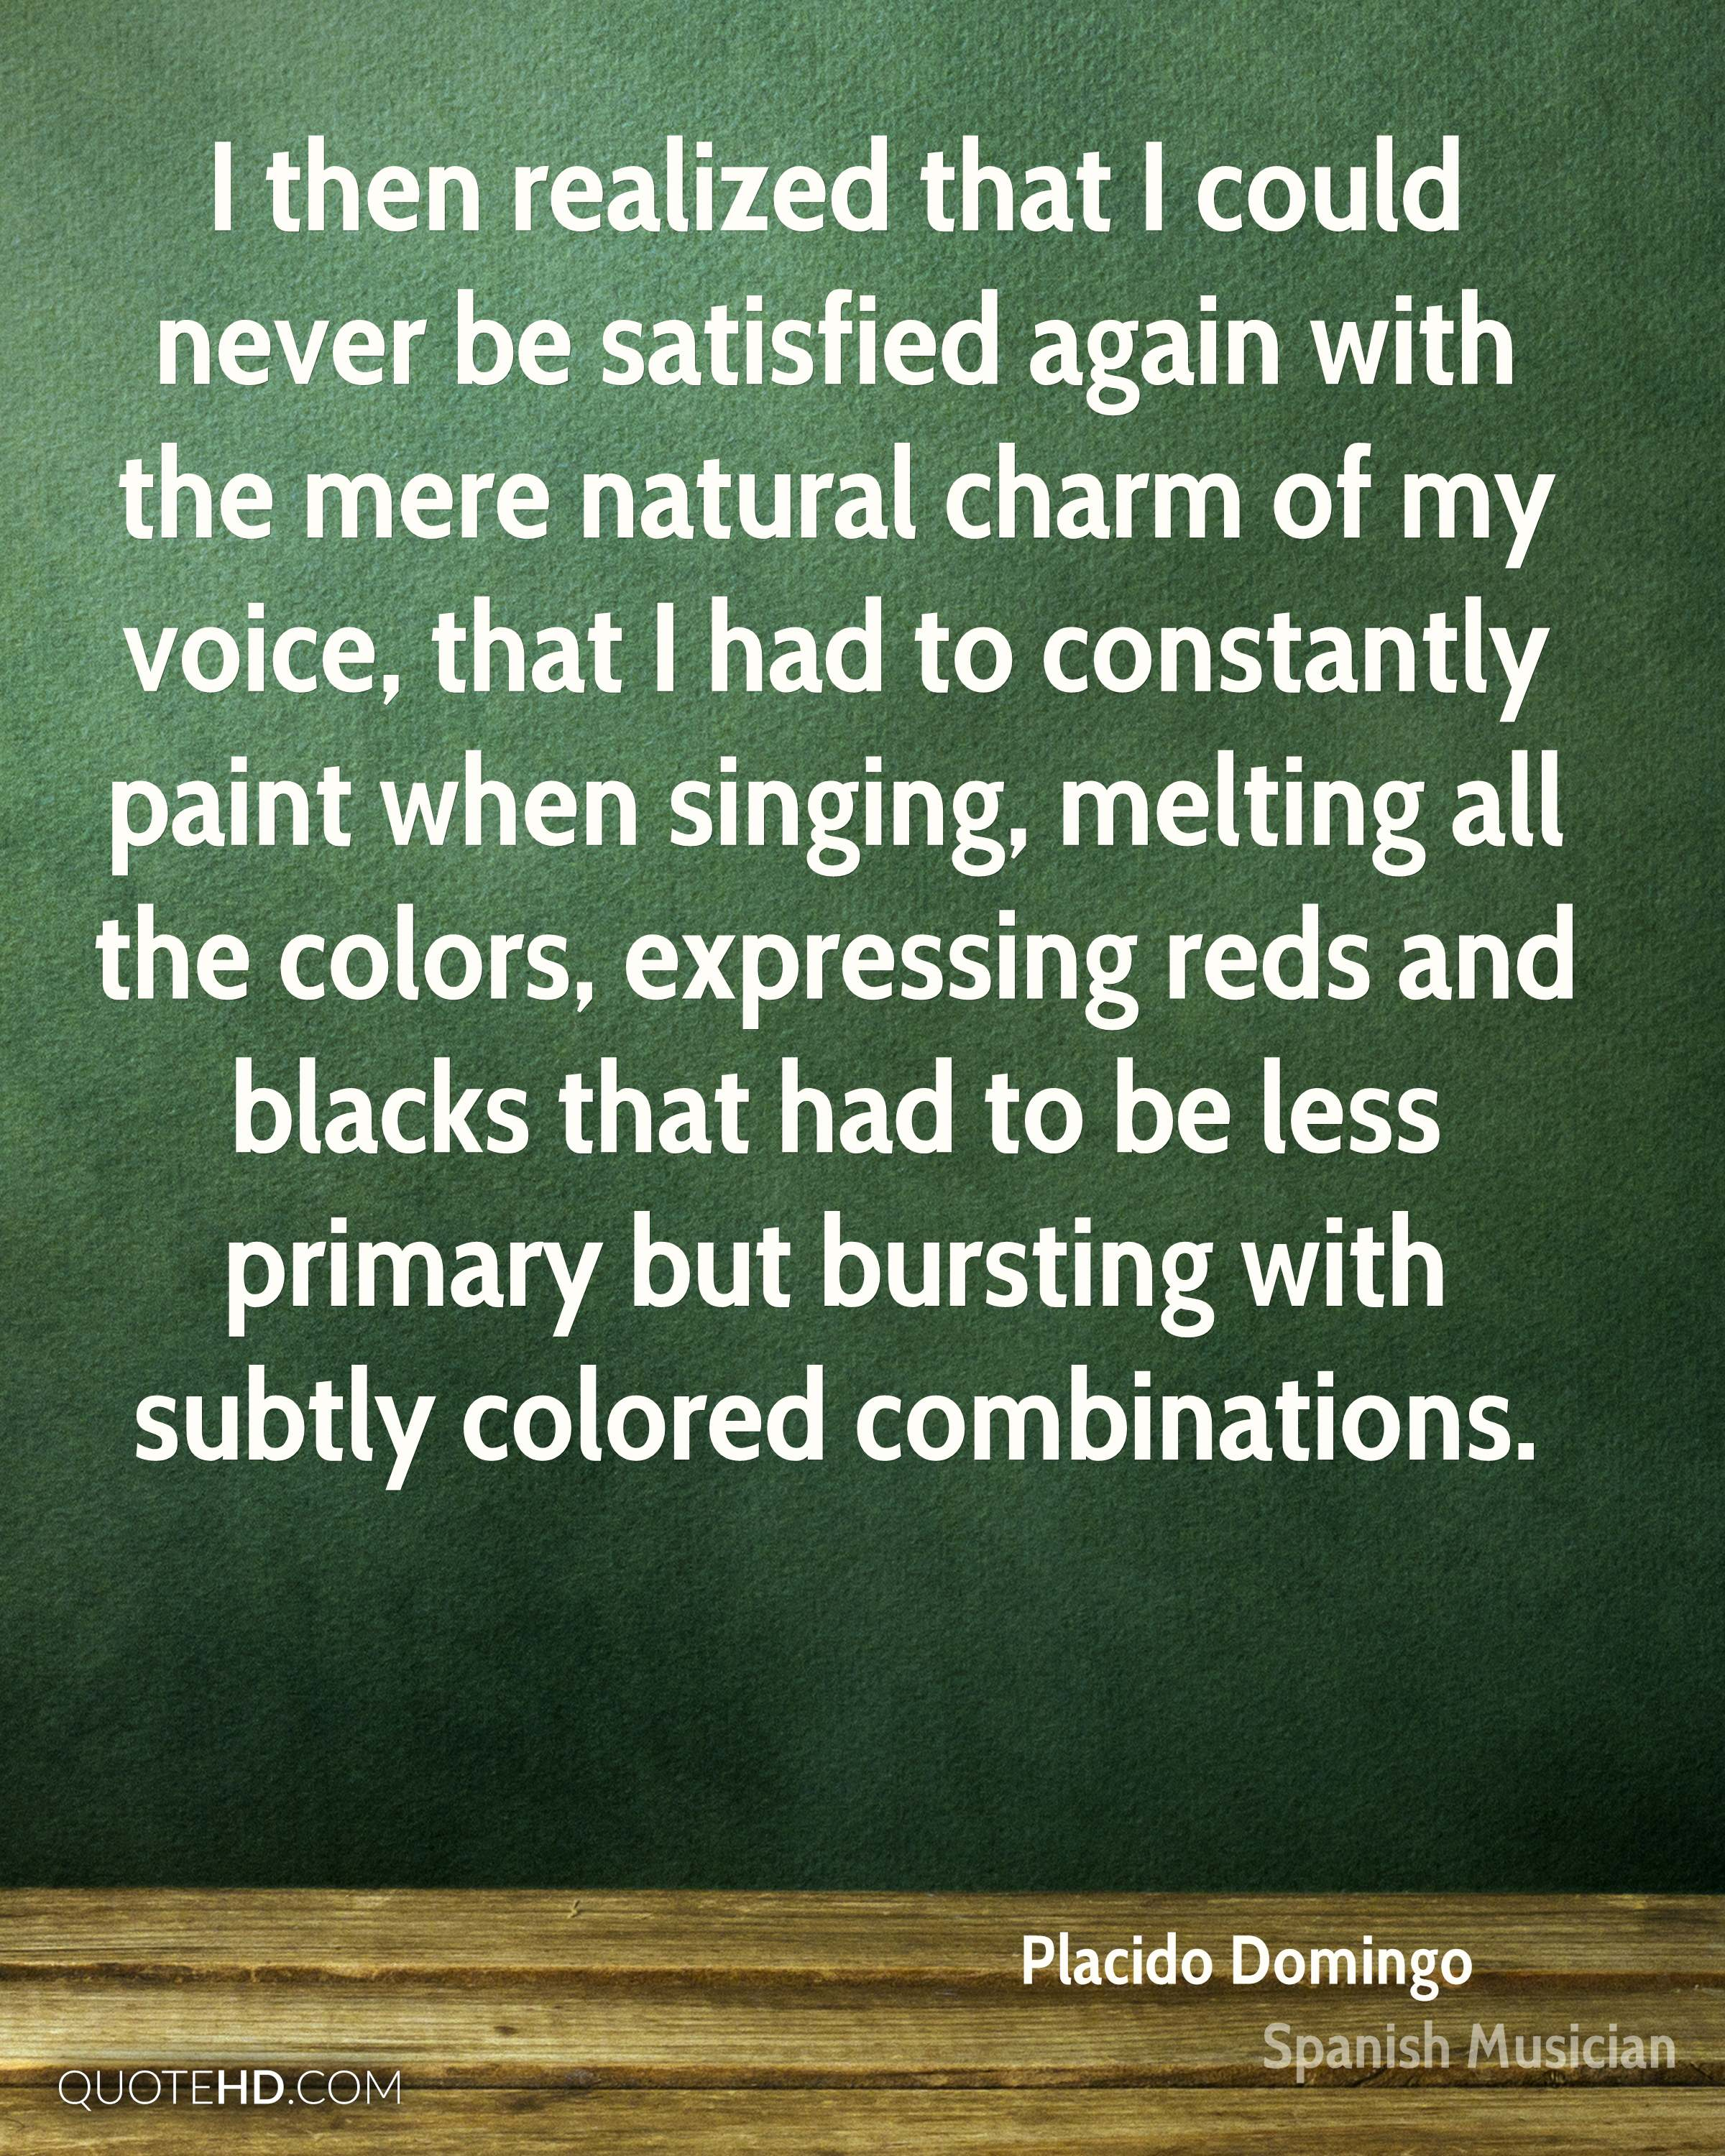 I then realized that I could never be satisfied again with the mere natural charm of my voice, that I had to constantly paint when singing, melting all the colors, expressing reds and blacks that had to be less primary but bursting with subtly colored combinations.